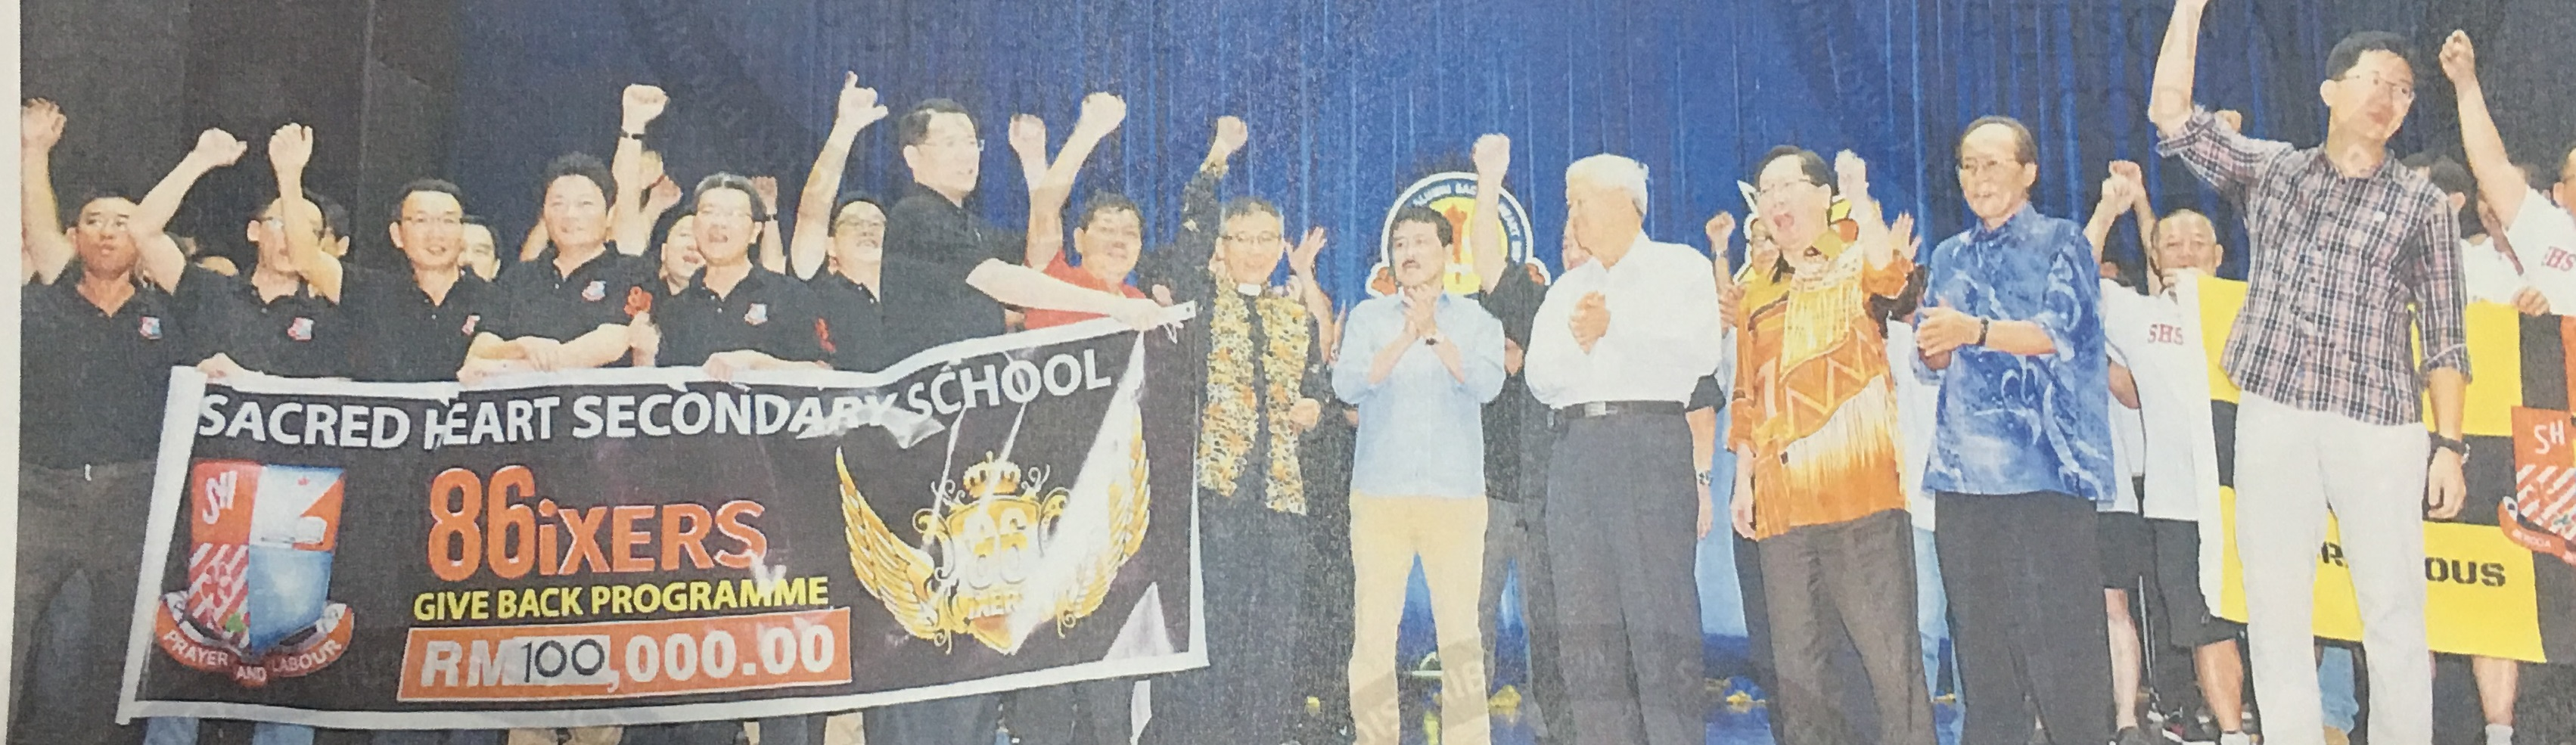 school borneo post